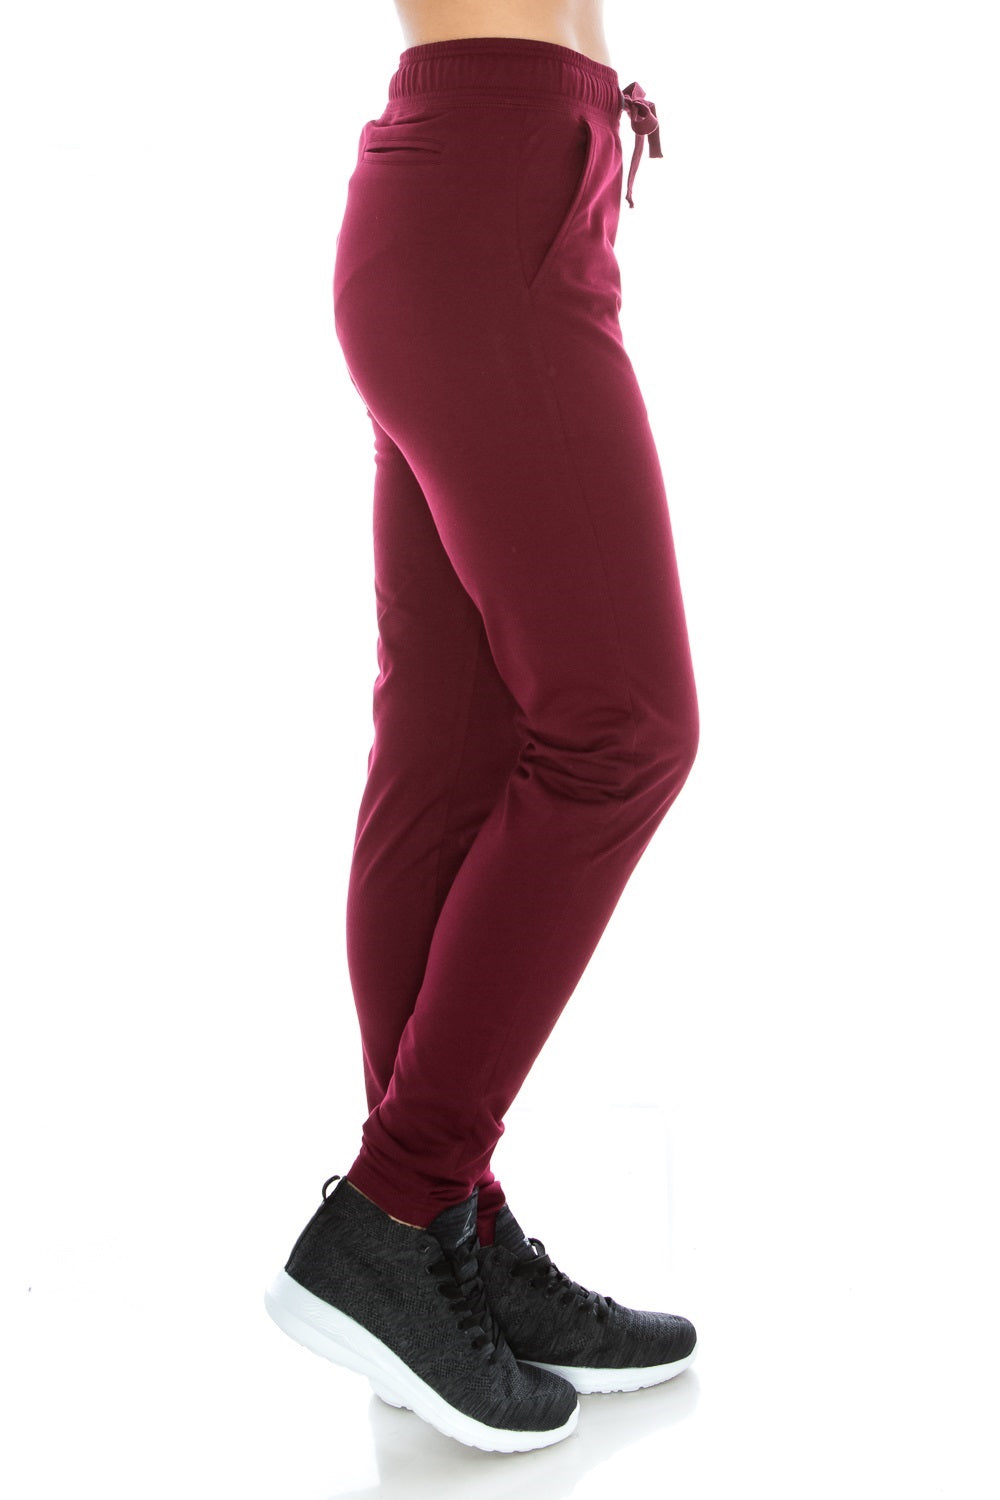 Burgundy Fitted Unisex Workout Sweatpants - Poplooks